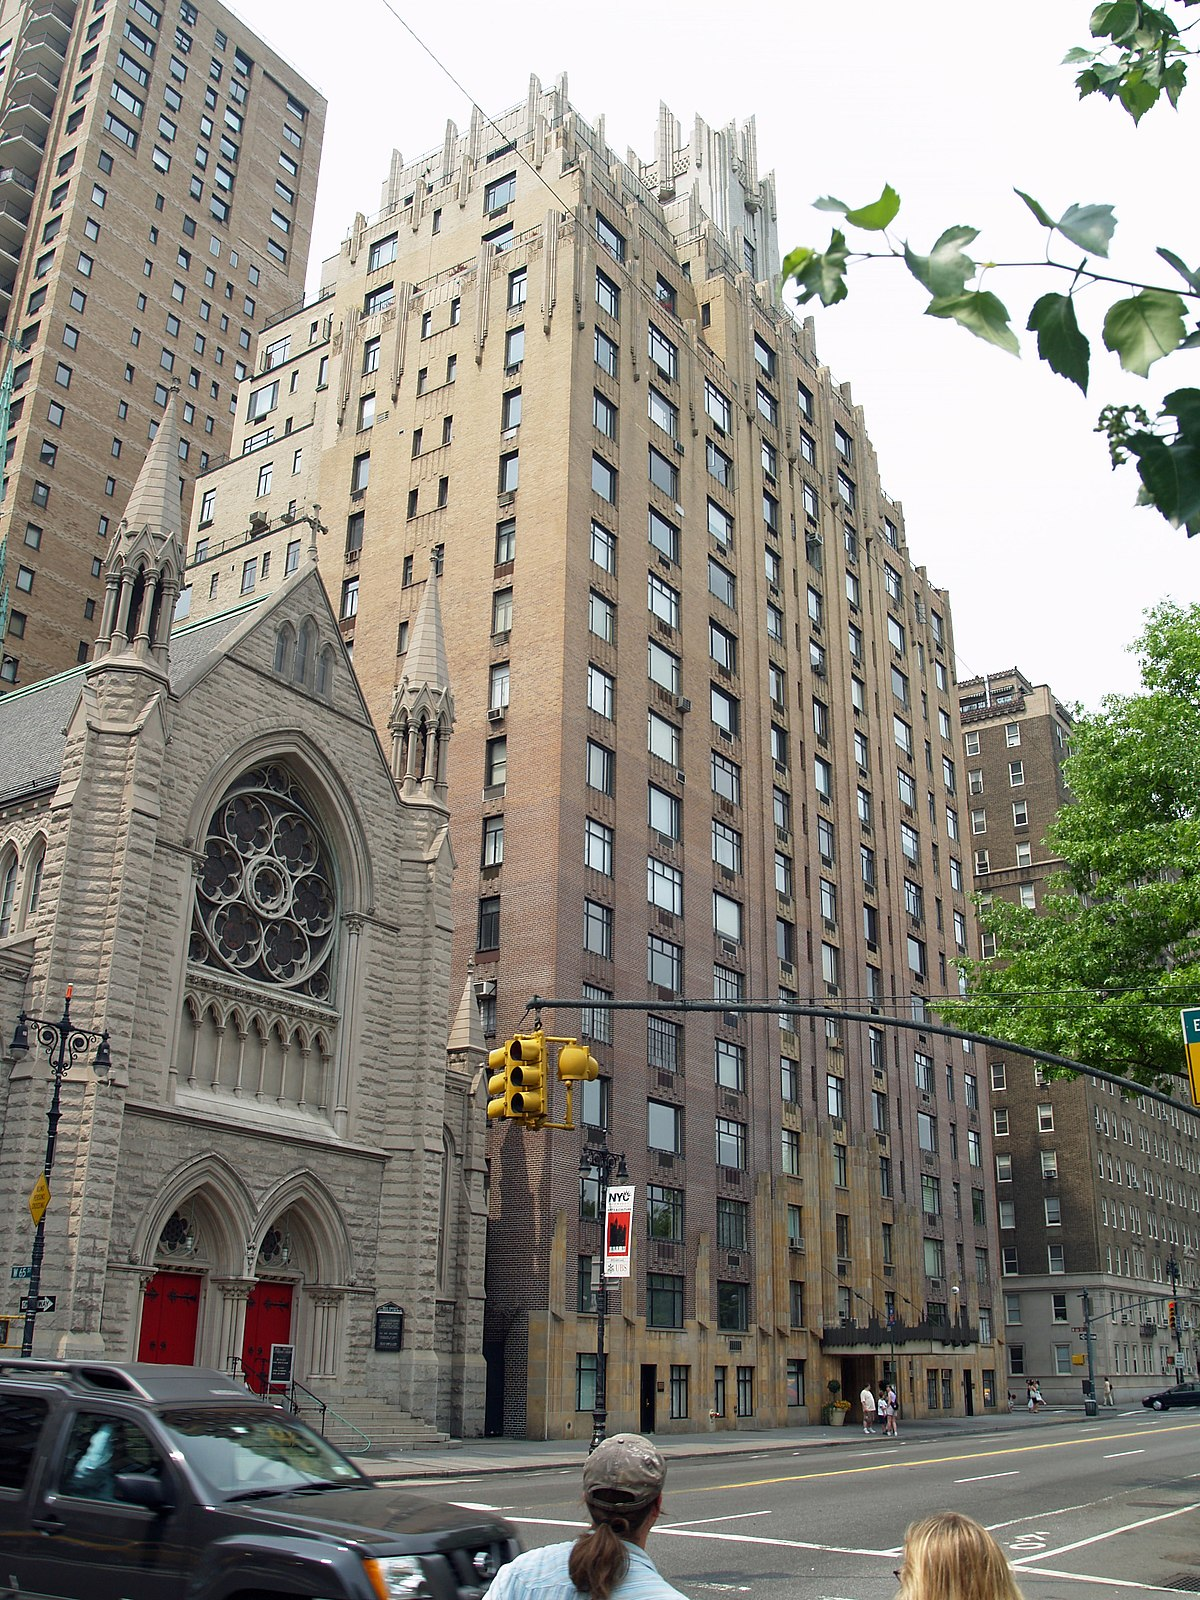 Dana S Apartment Building Ghostbusters 55 central park west - wikipedia